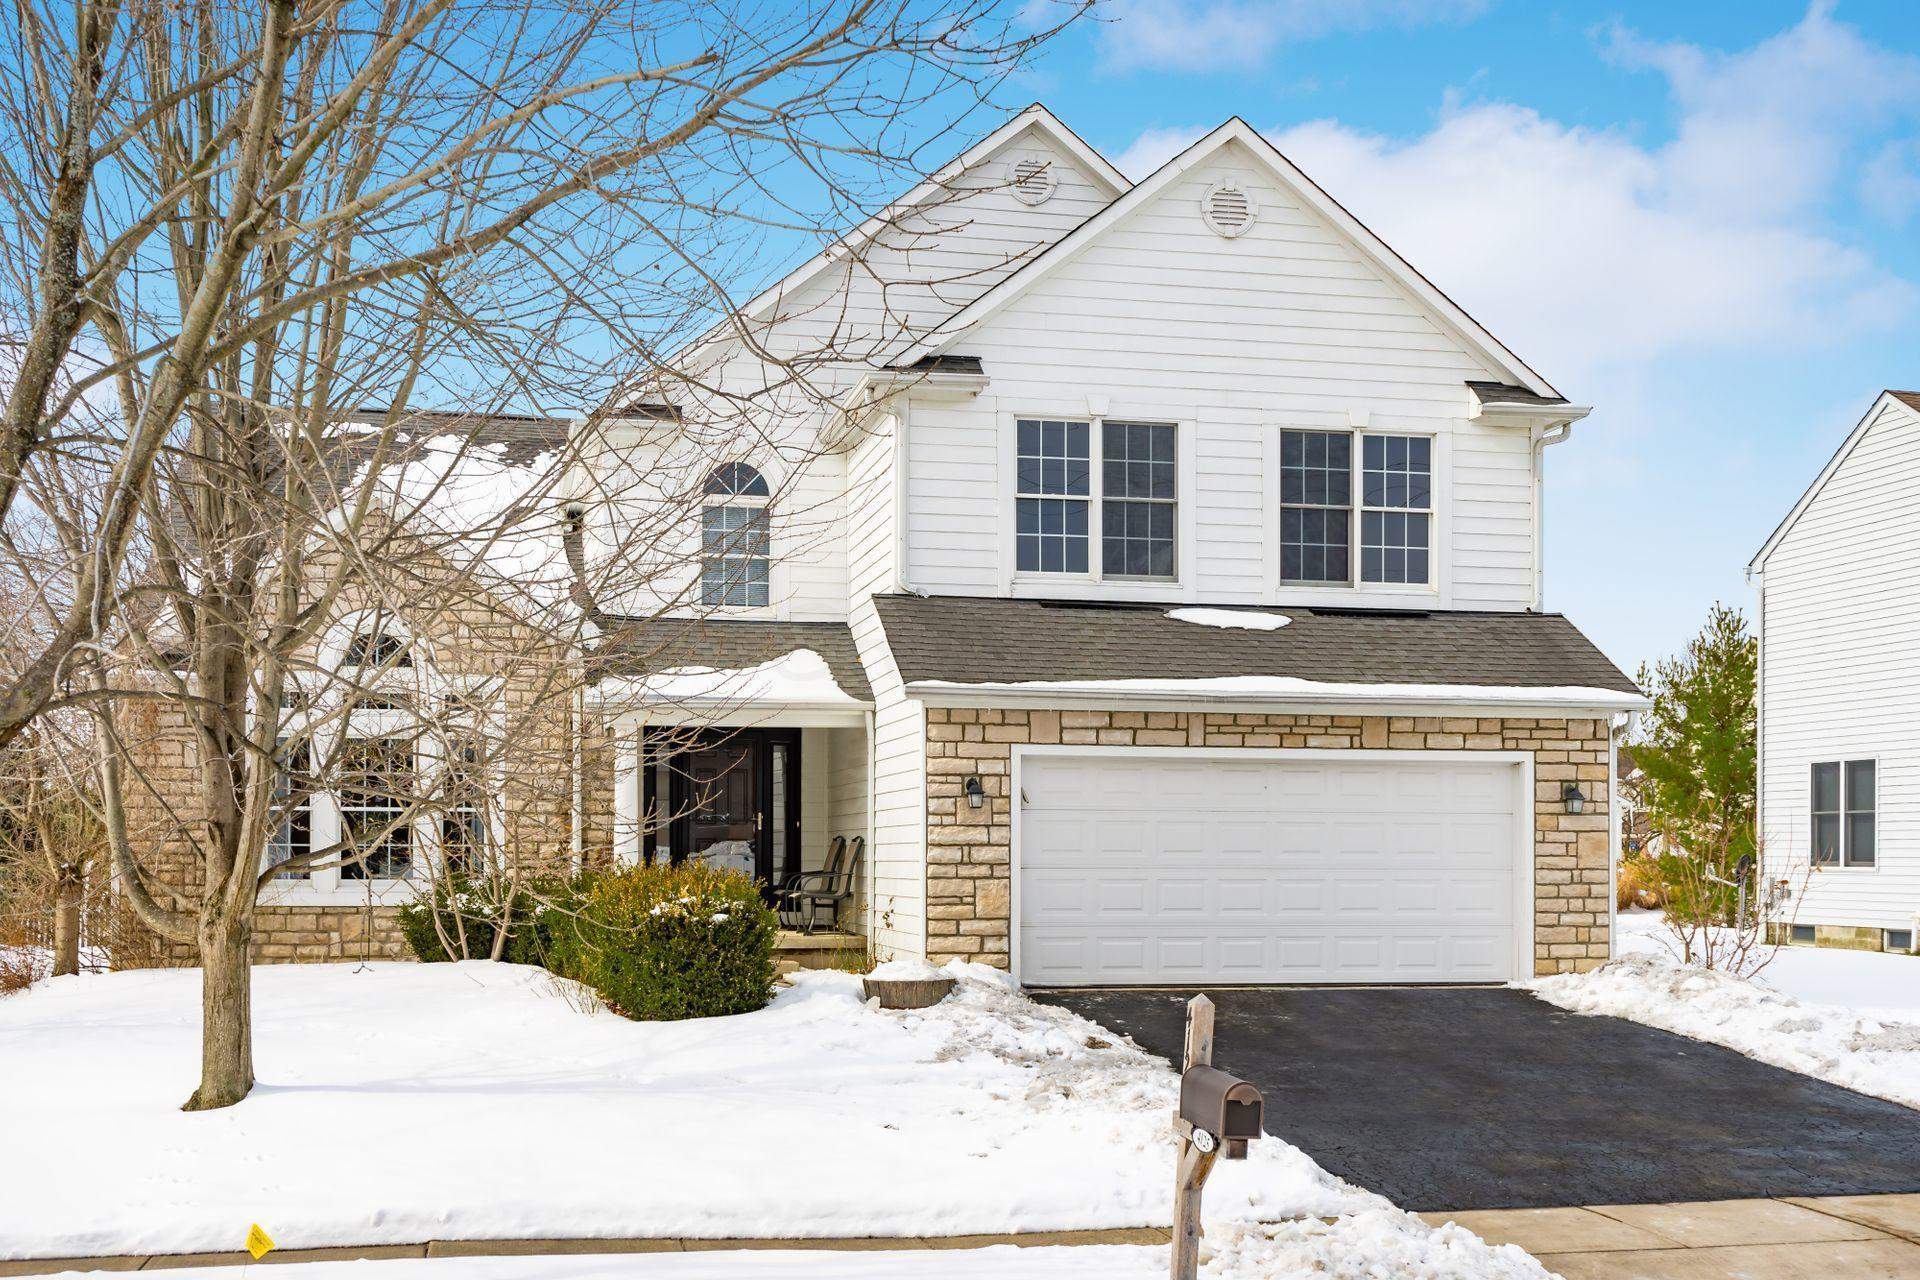 Photo of 4125 Leppert Road, Hilliard, OH 43026